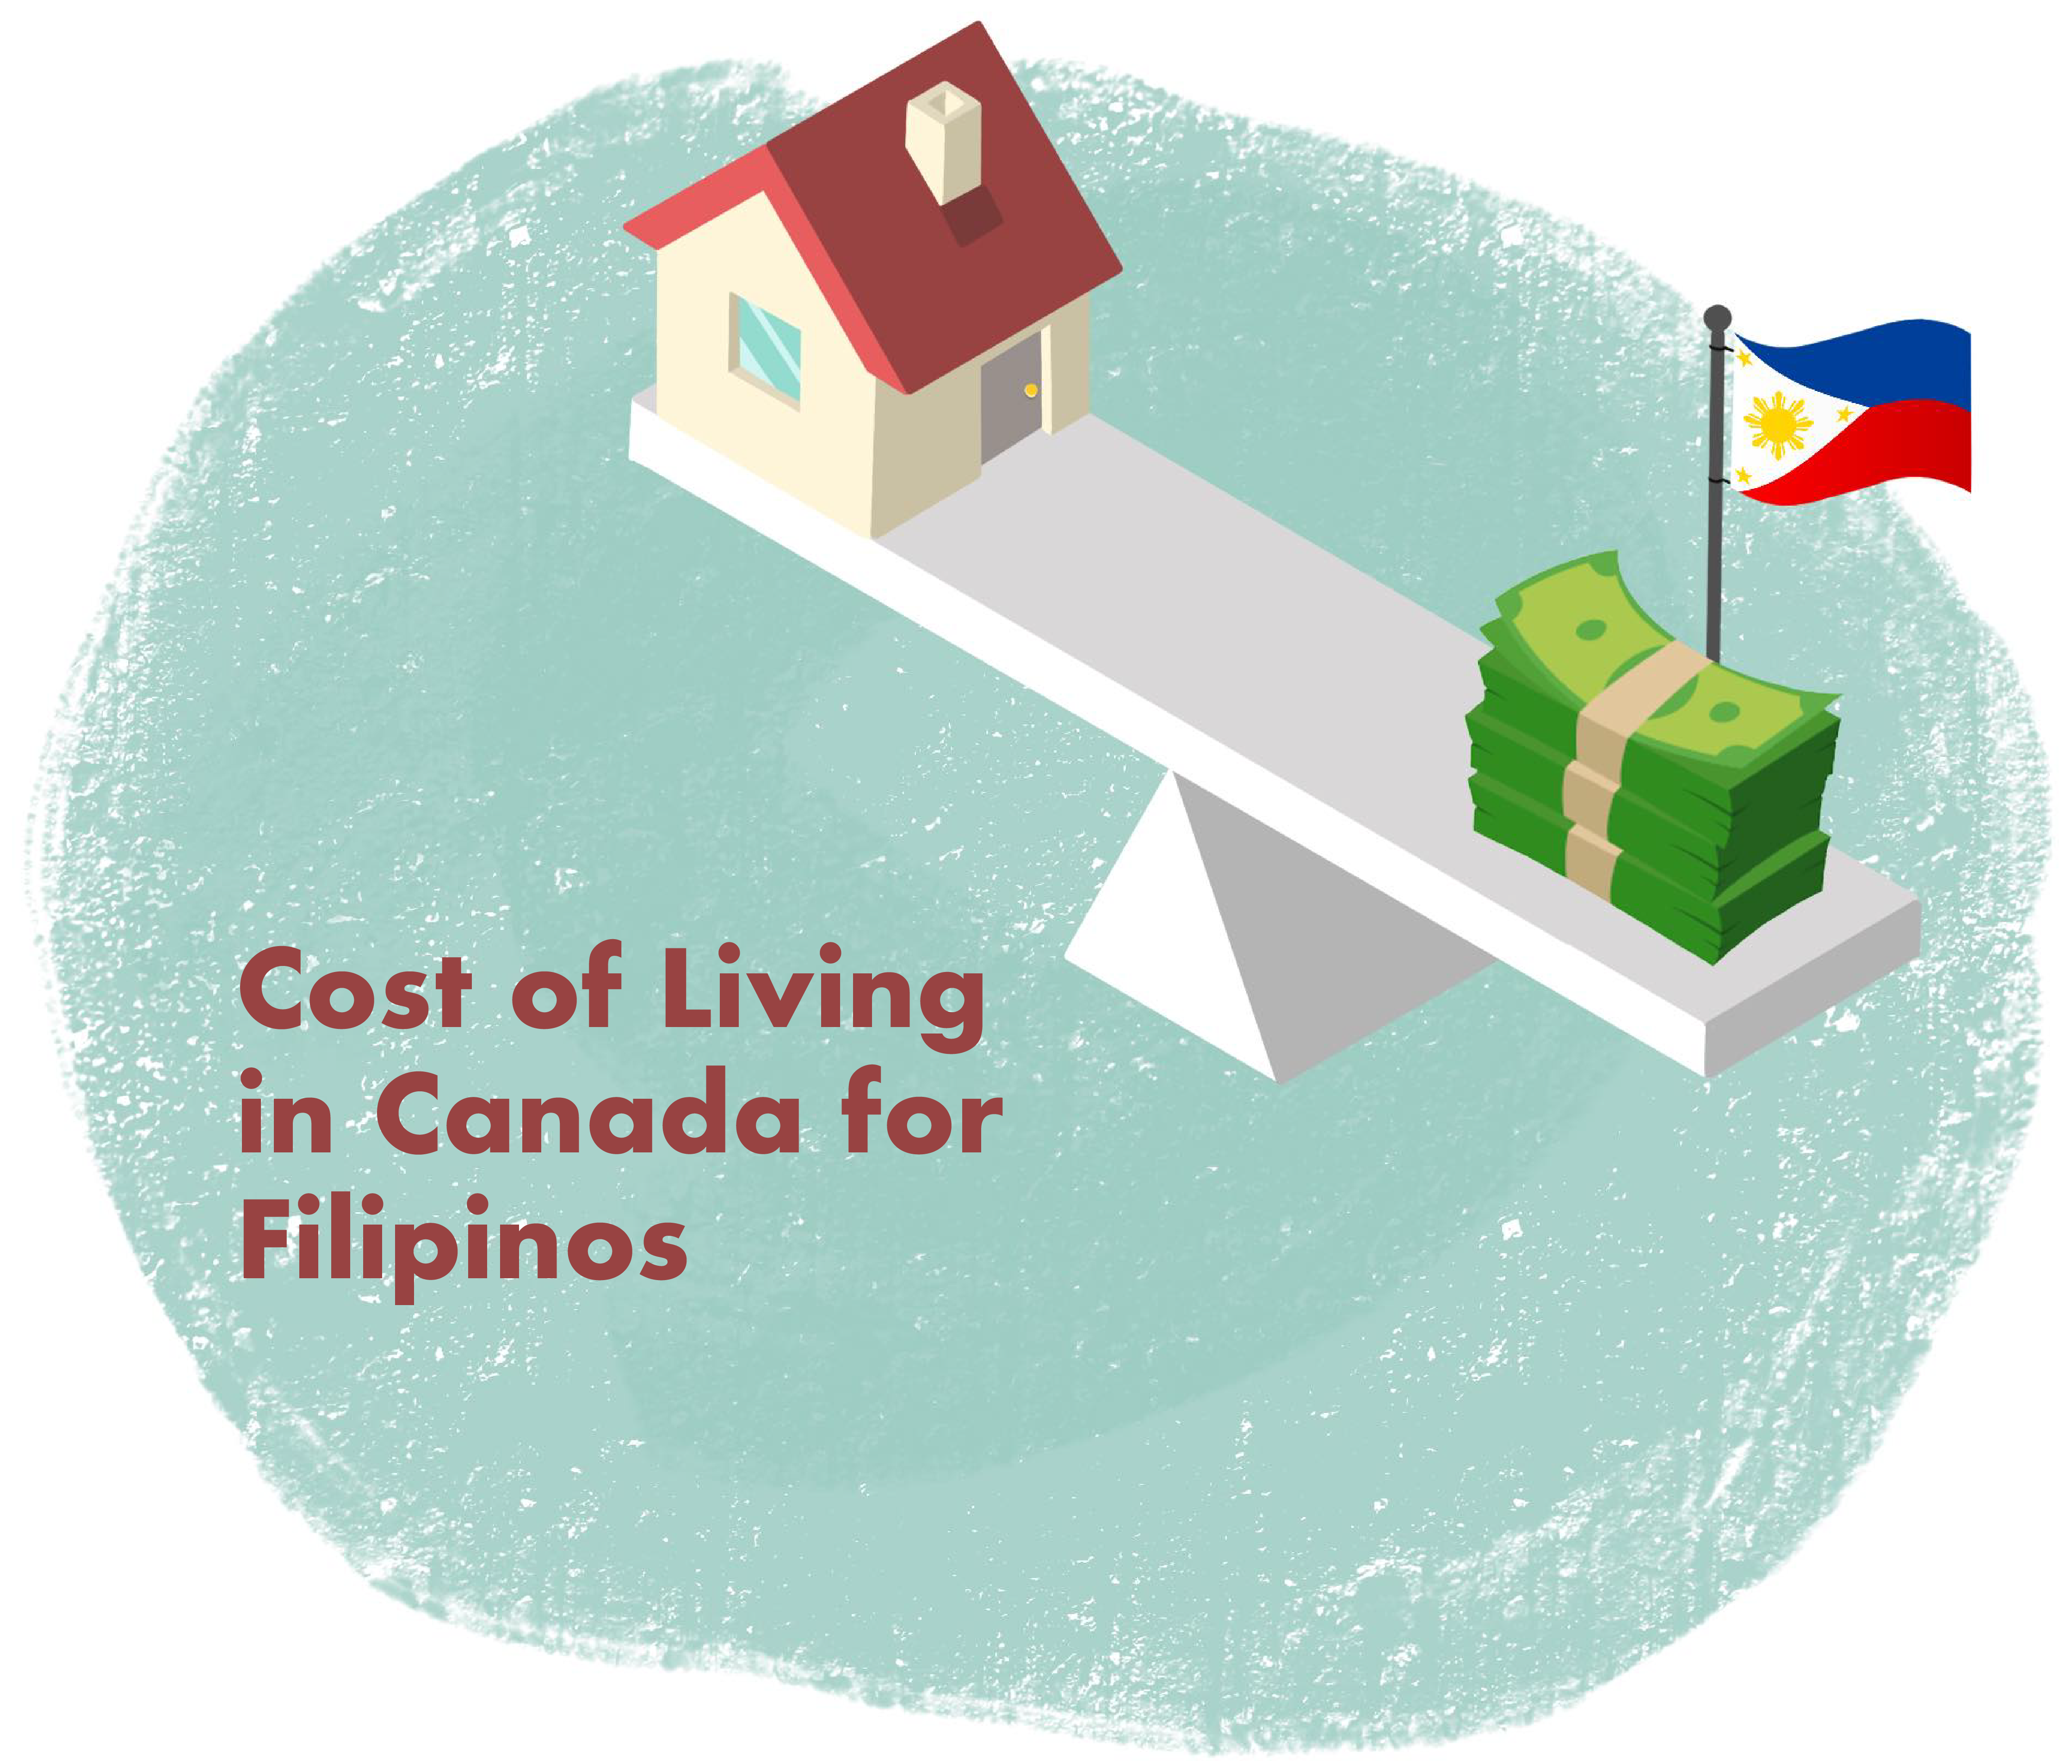 Cost of Living in Canada for Filipinos